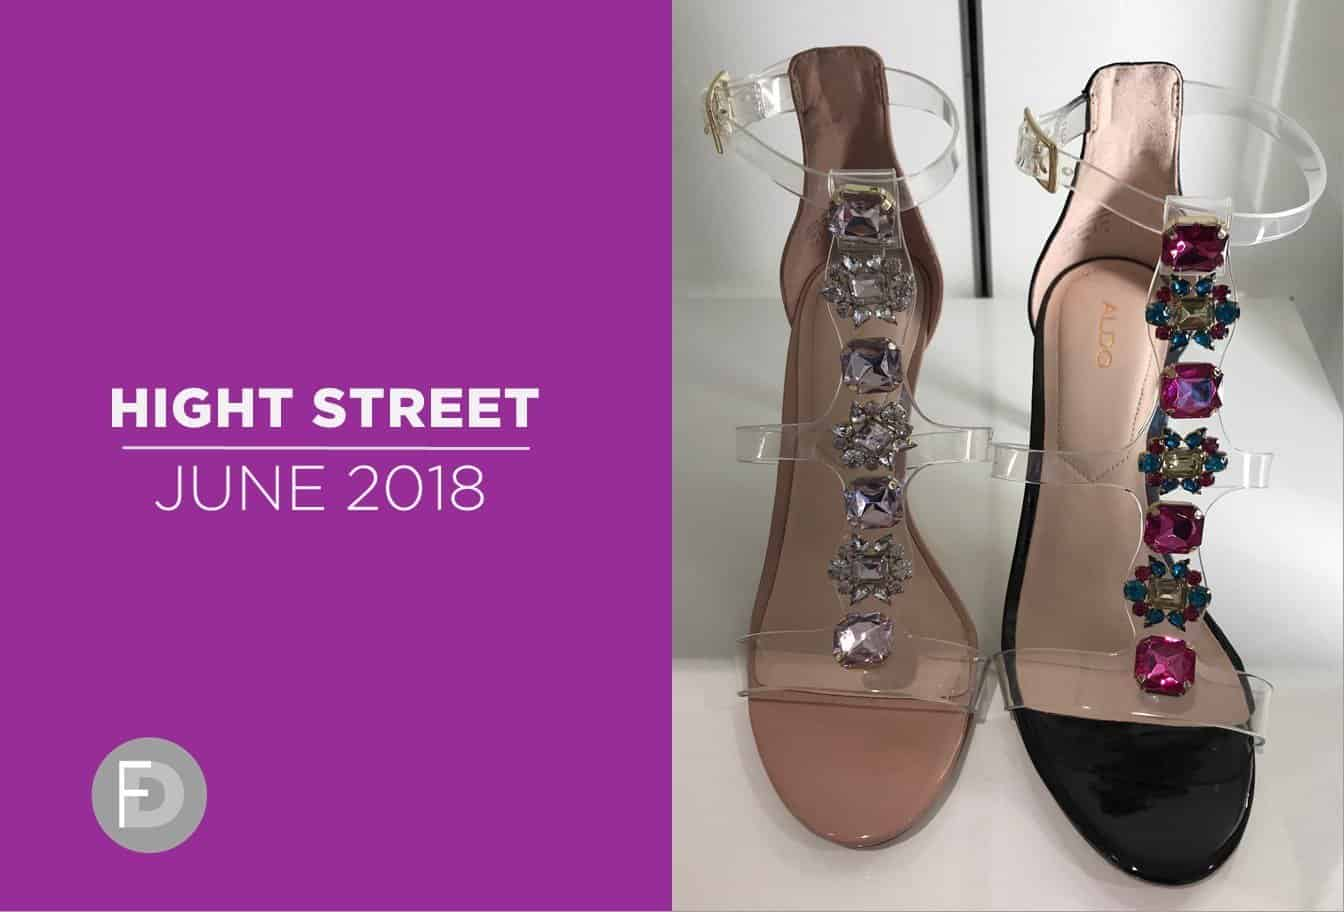 Retail High Street June 18 – Part 2